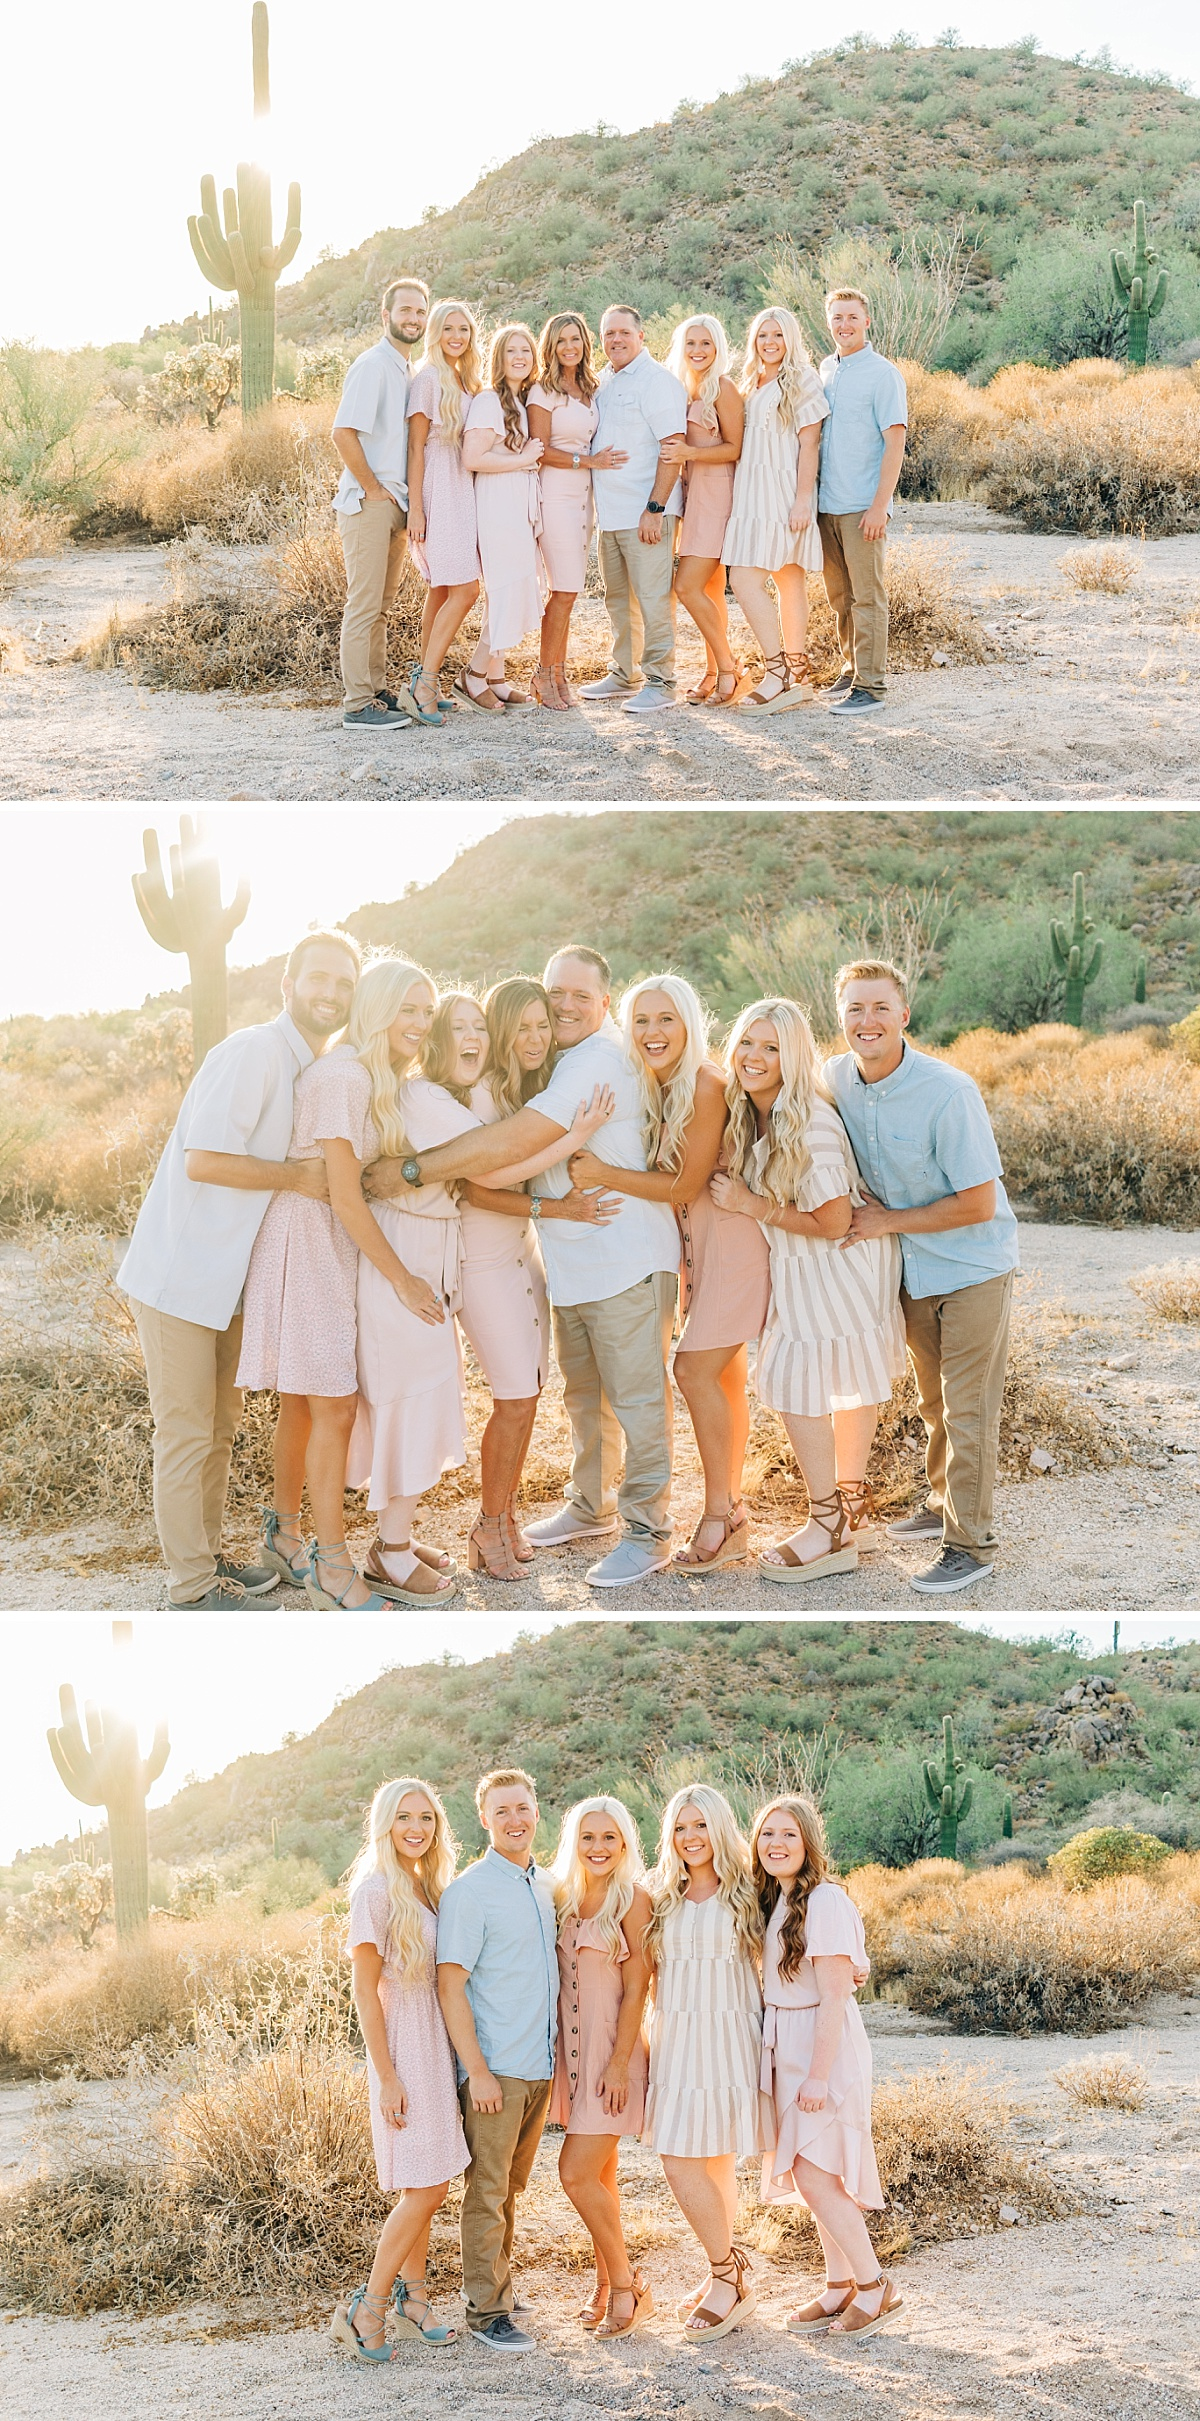 SCOTTSDALE EXTENDED FAMILY PHOTOGRAPHER | WHAT TO EXPECT